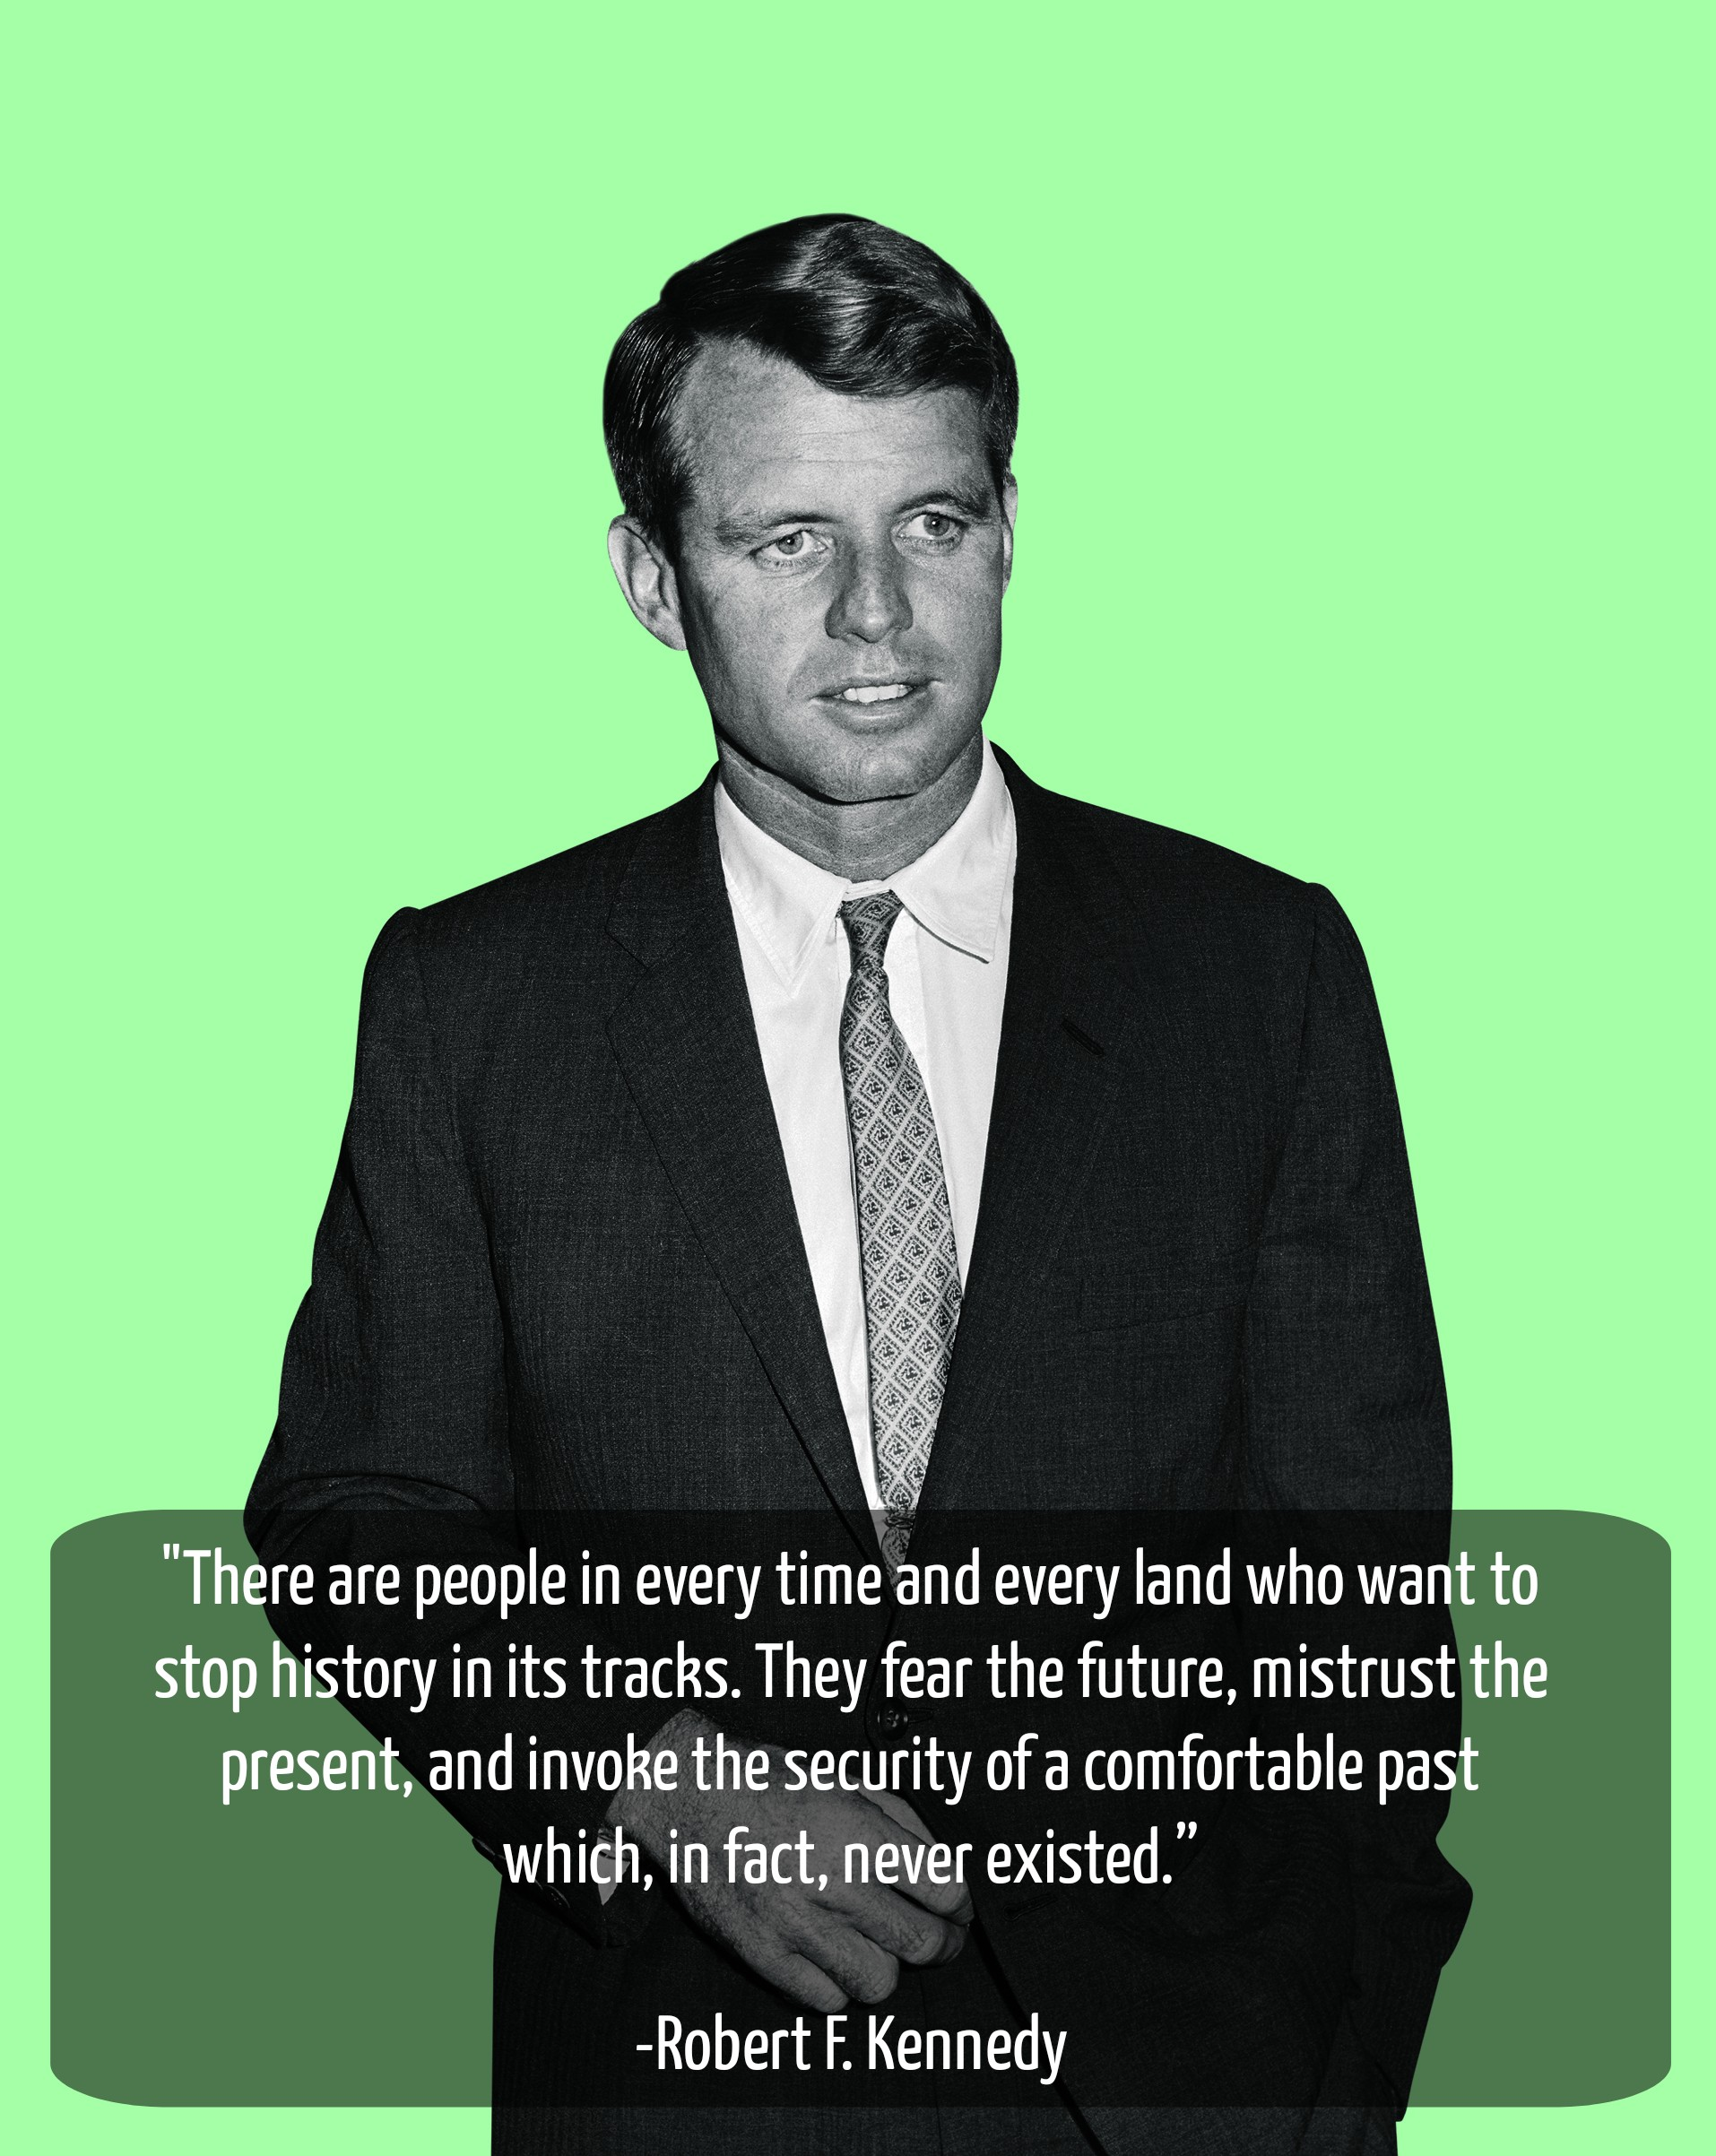 """There are people in every time and every land who want to stop history in its tracks. They fear the future, mistrust the present, and invoke the security of a comfortable past which, in fact, never existed."" [1914 x 2305] -Robert F. Kennedy"